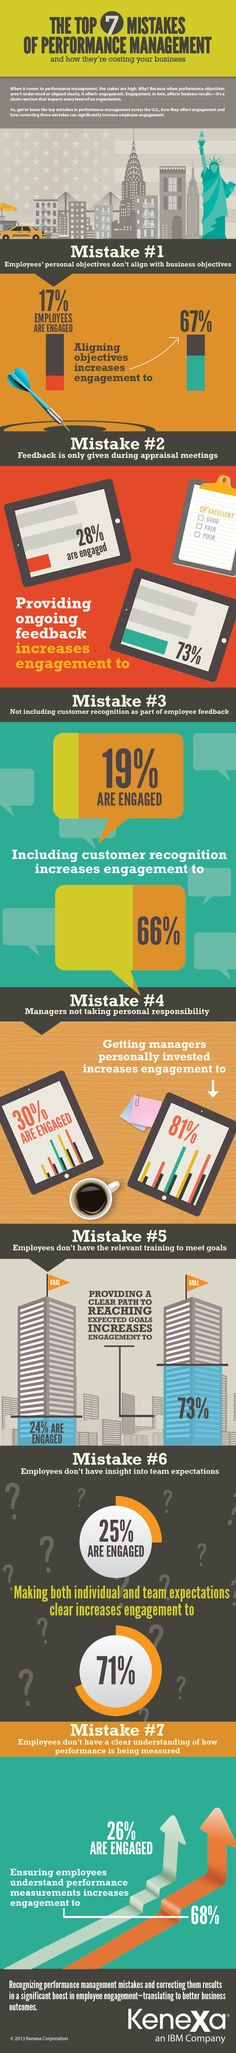 [Infographic] The Top 7 Mistakes Of Performance Management: via @Kenexa #HR #management